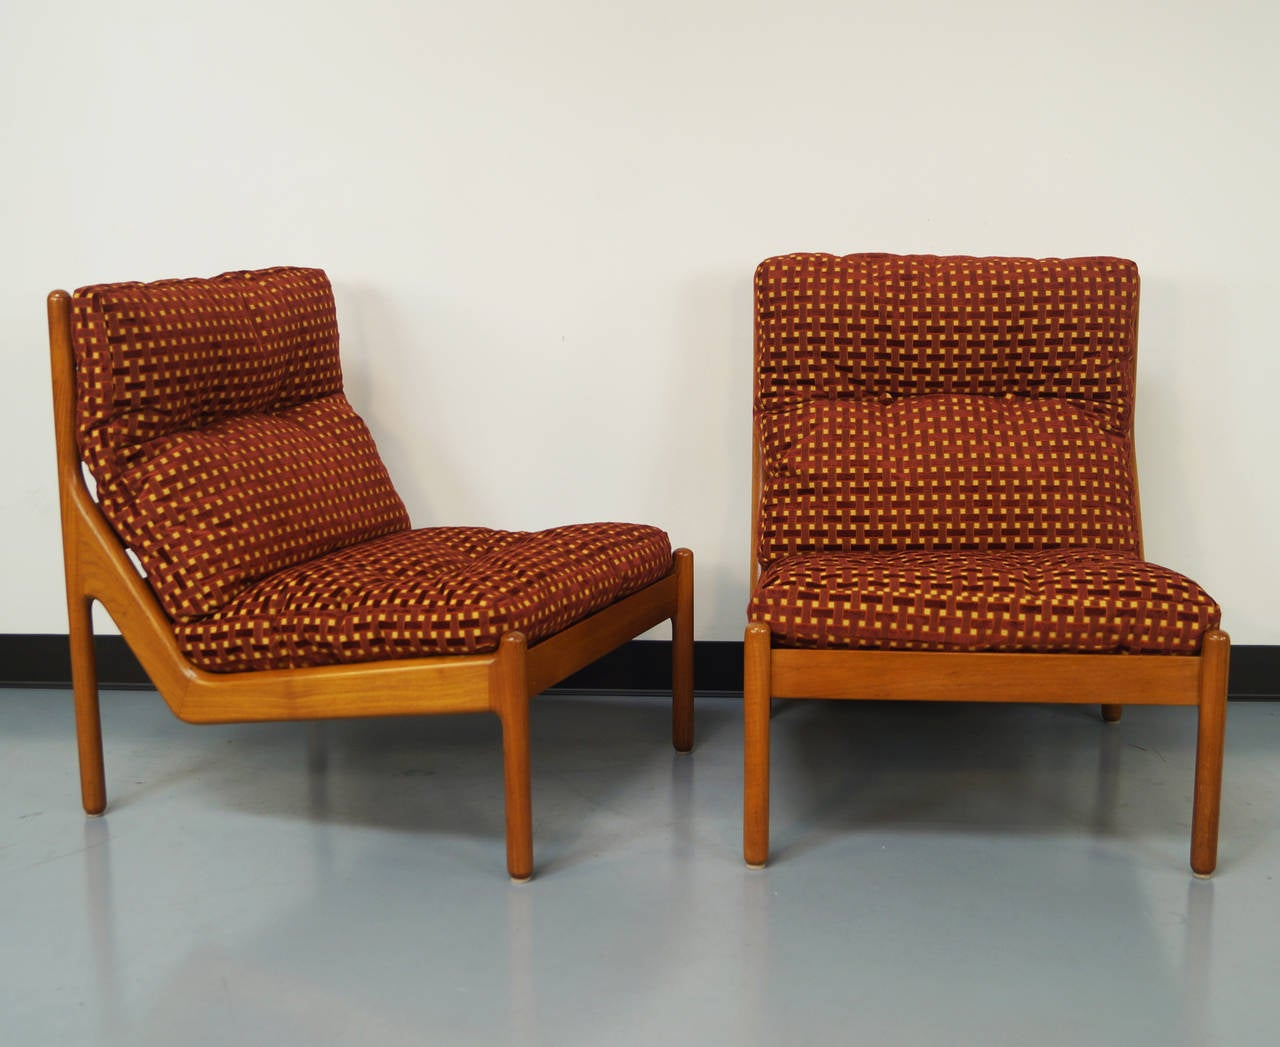 Danish Teak Lounge Chairs by Niels Bach For Sale at 1stdibs